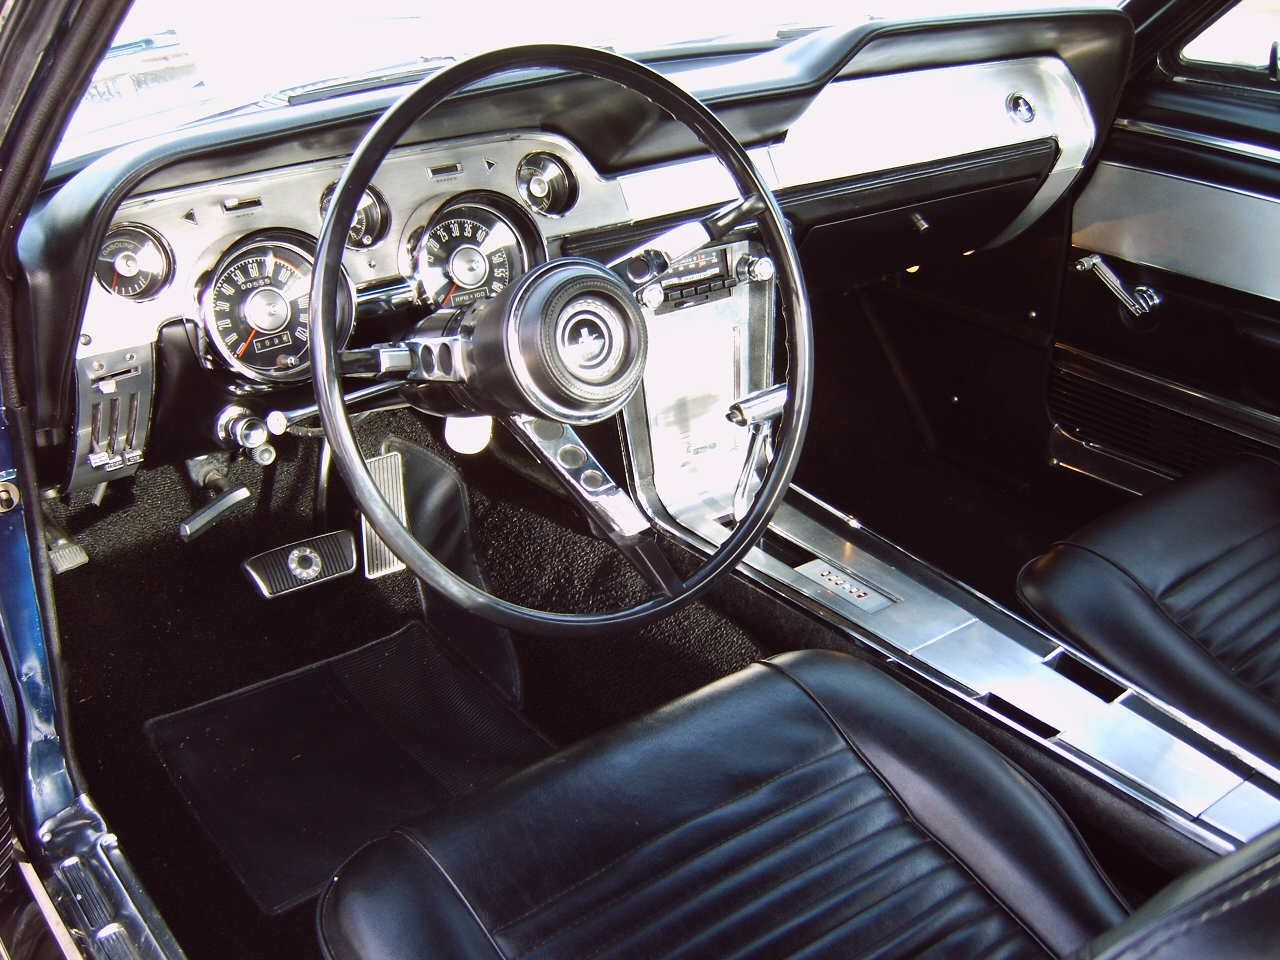 1967 Ford Mustang Gt Fastback Mustang Interior Ford Mustang